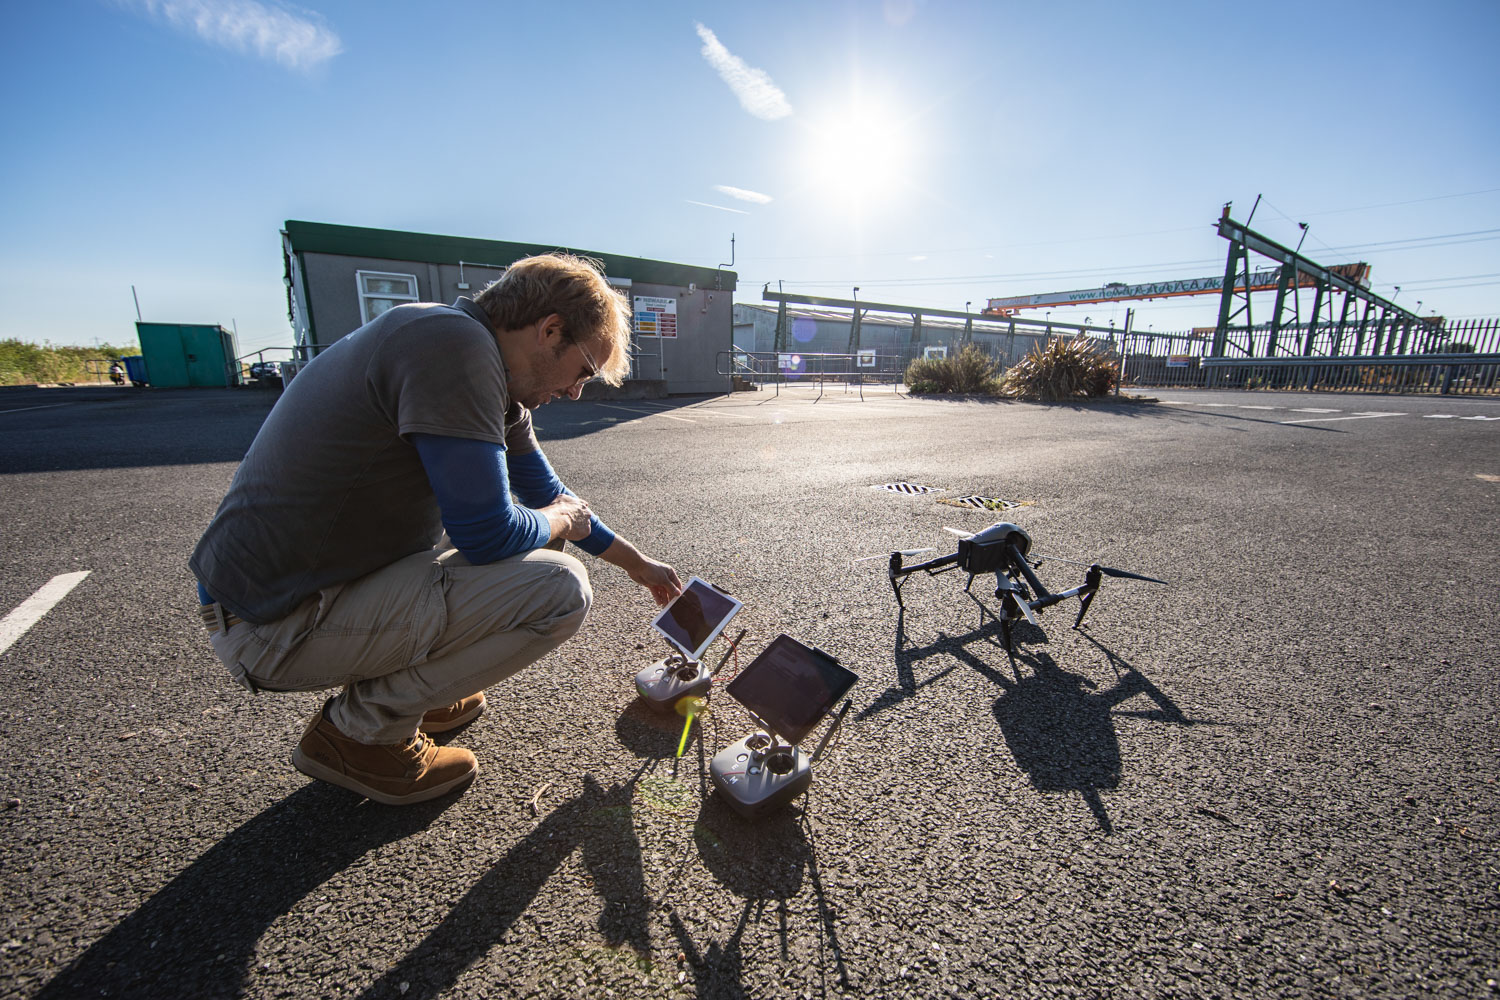 drone_filming_aerial_imagery_north_wales_drone_experts-14.jpg